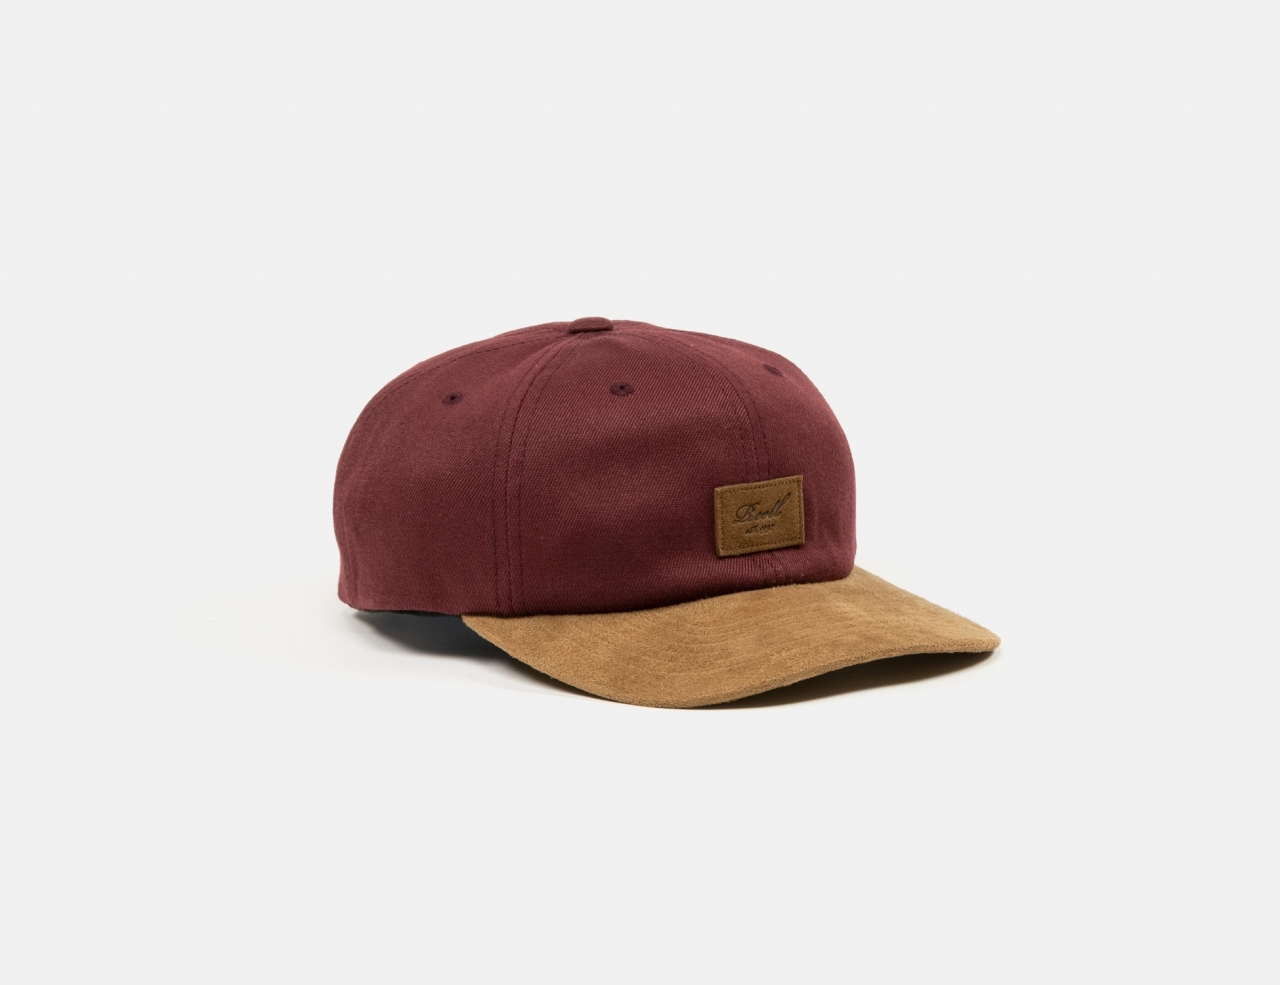 Reell Jeans Curved Suede Dad Cap - Maroon